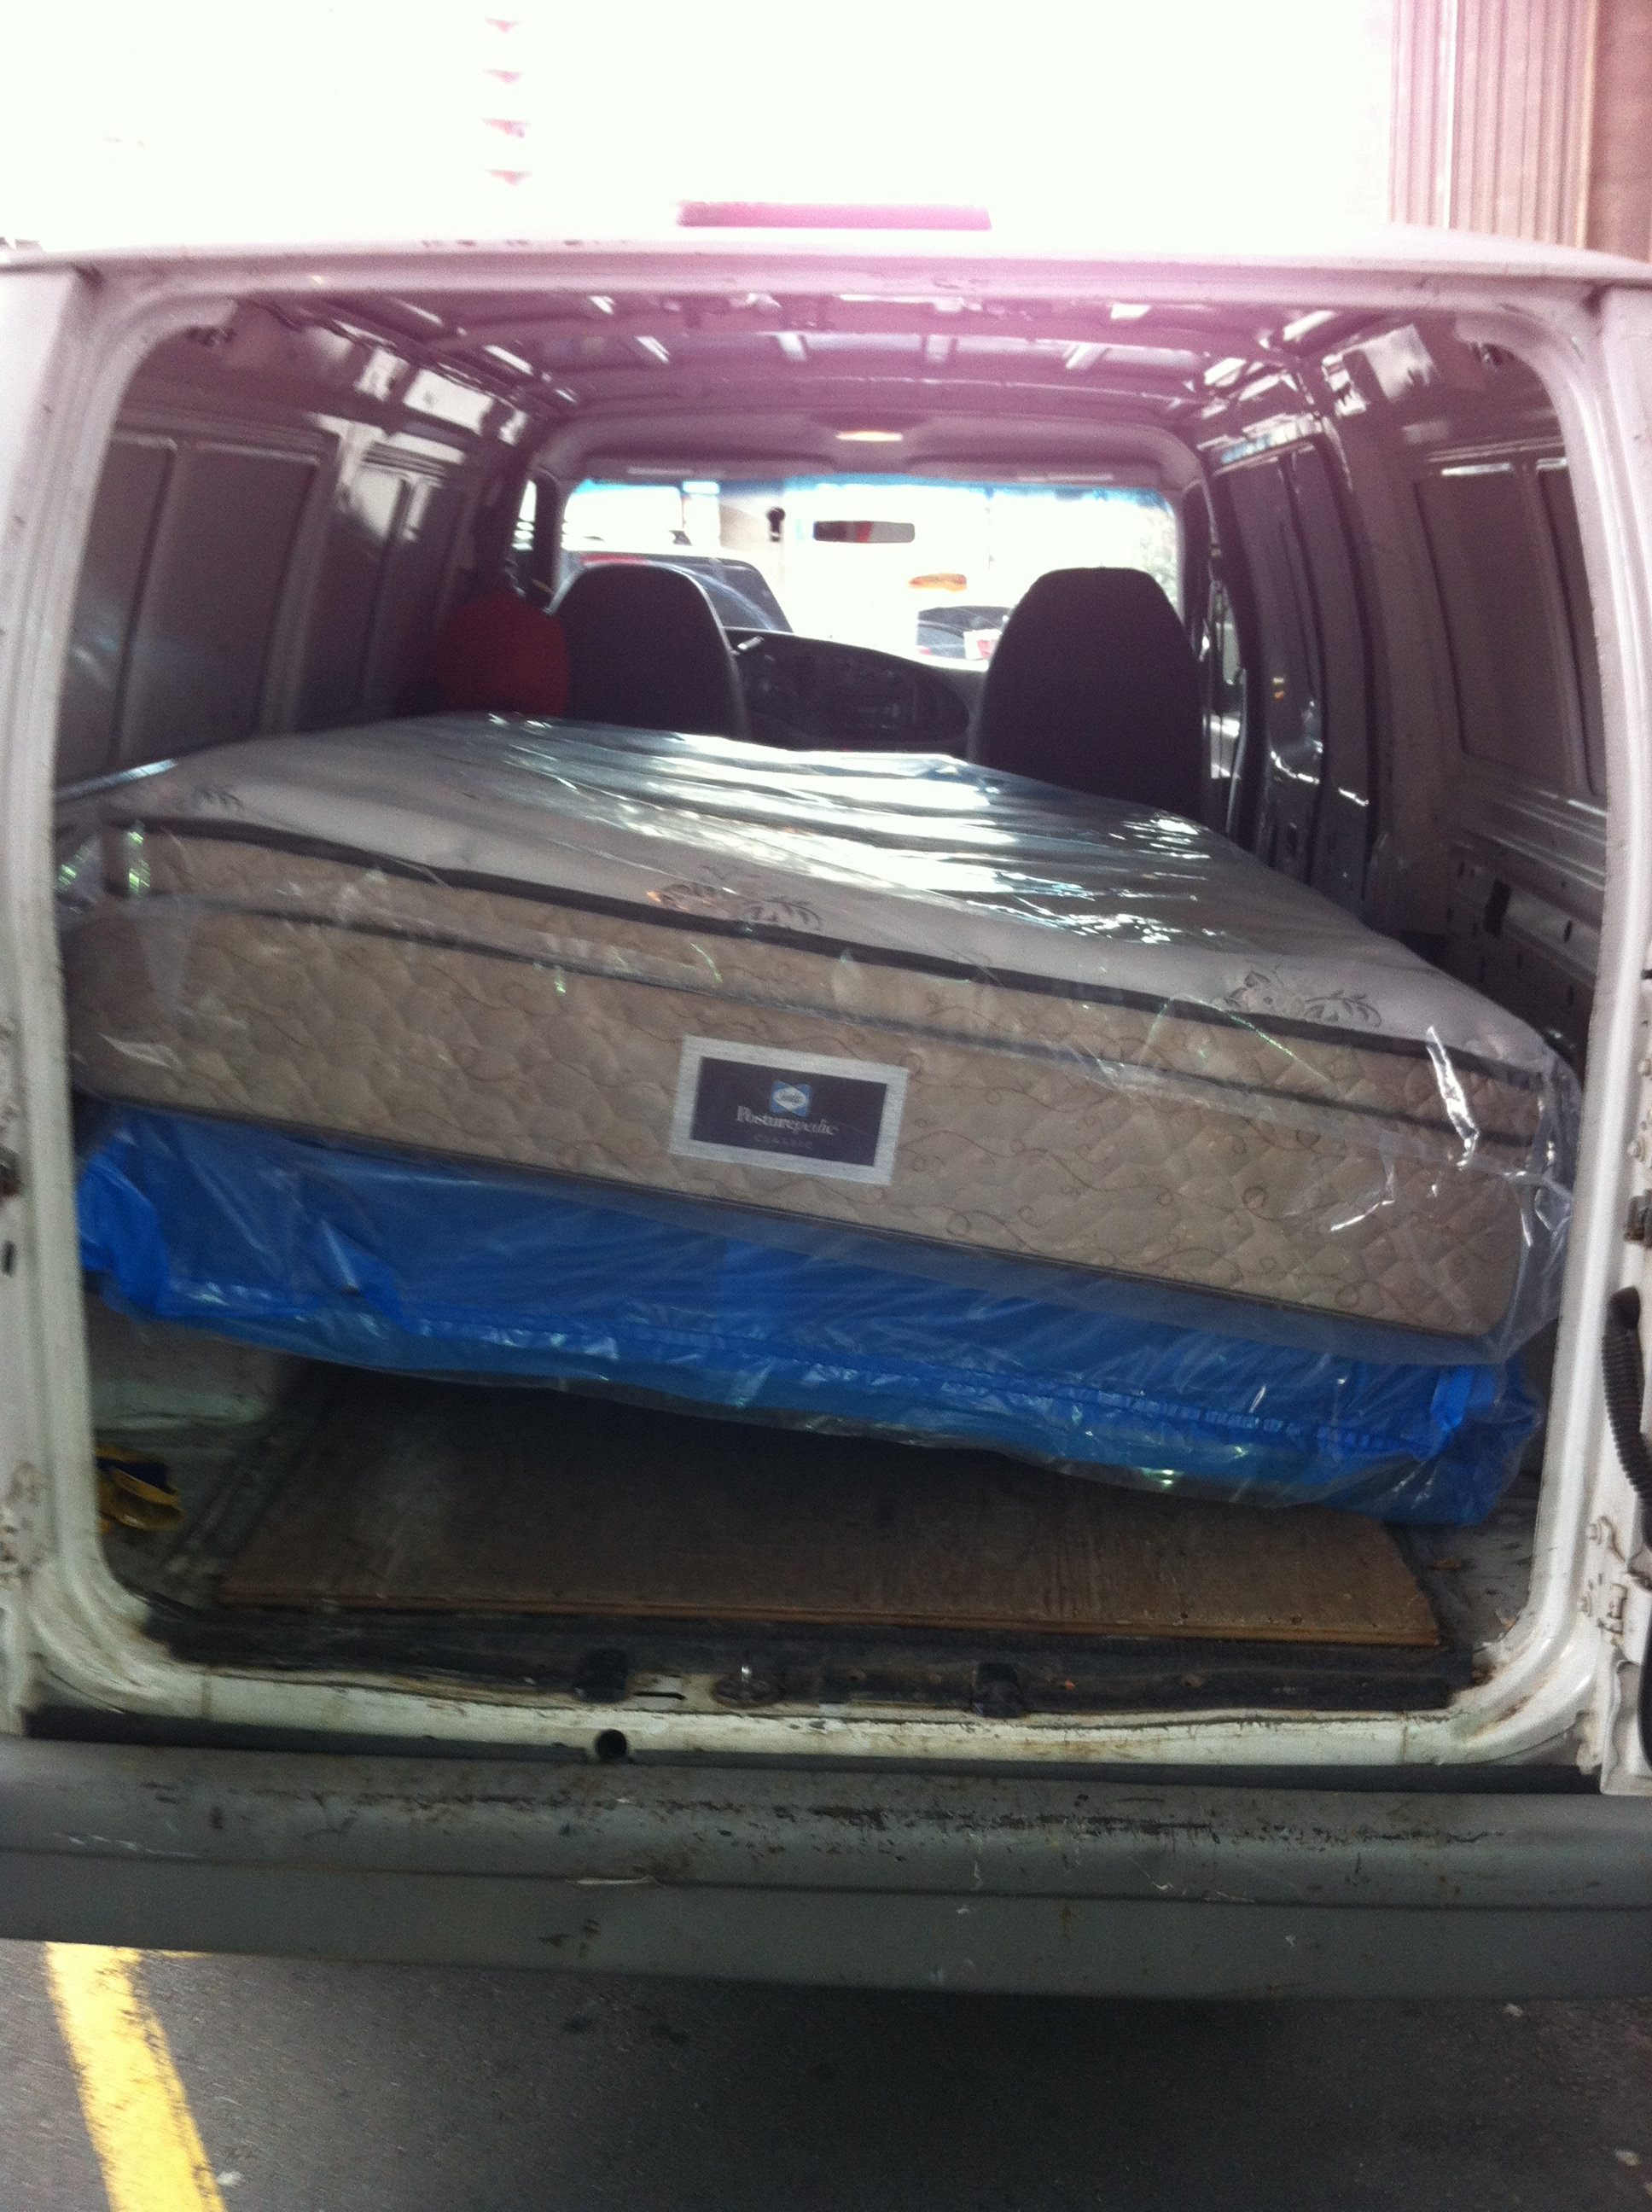 Downtown Vancouver Costco Queen Mattress And Box Spring Pickup